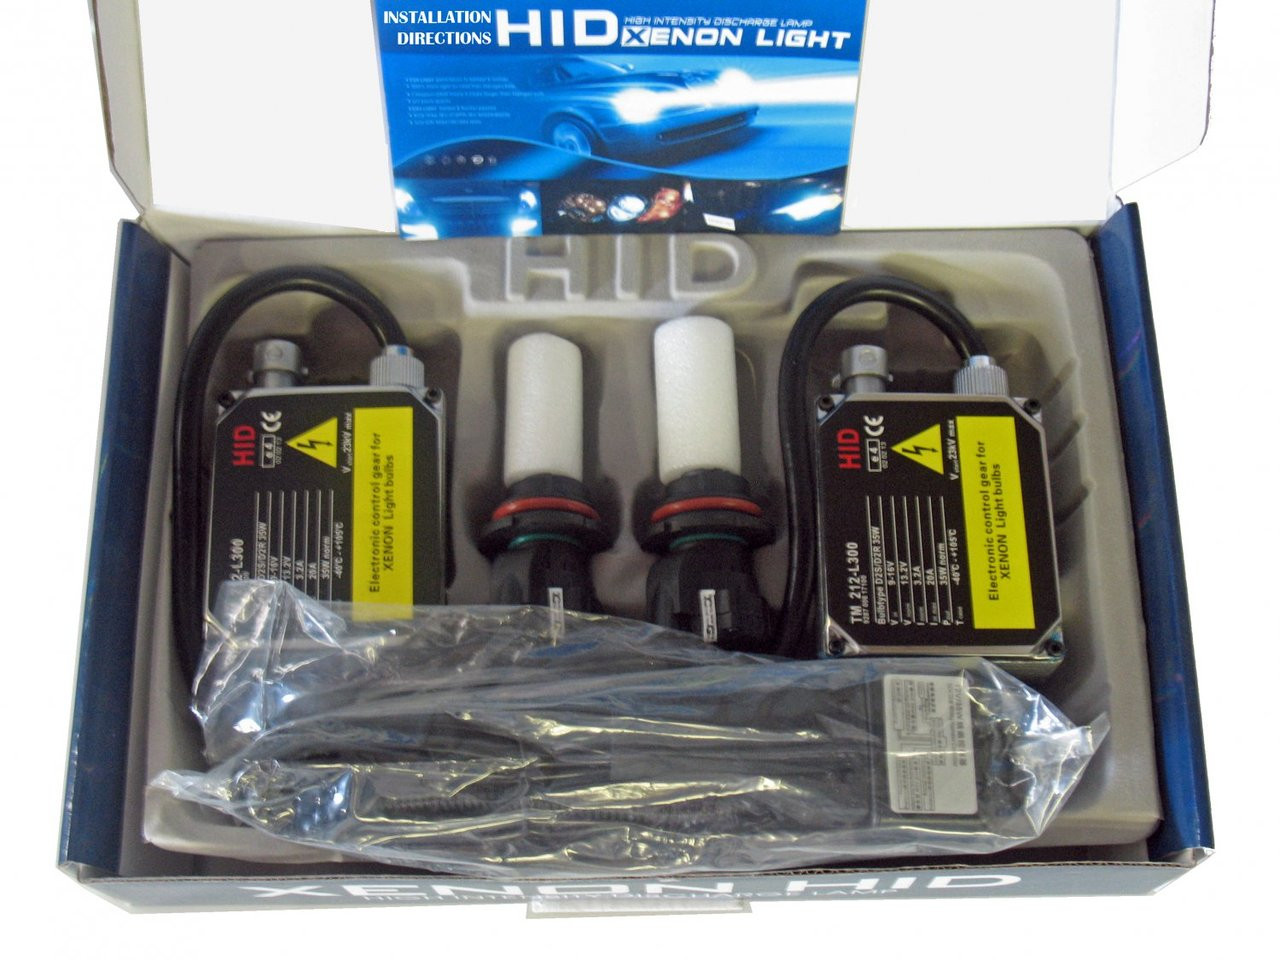 12,000K Violet 55Watt H6M BiXenon HID Conversion Kit